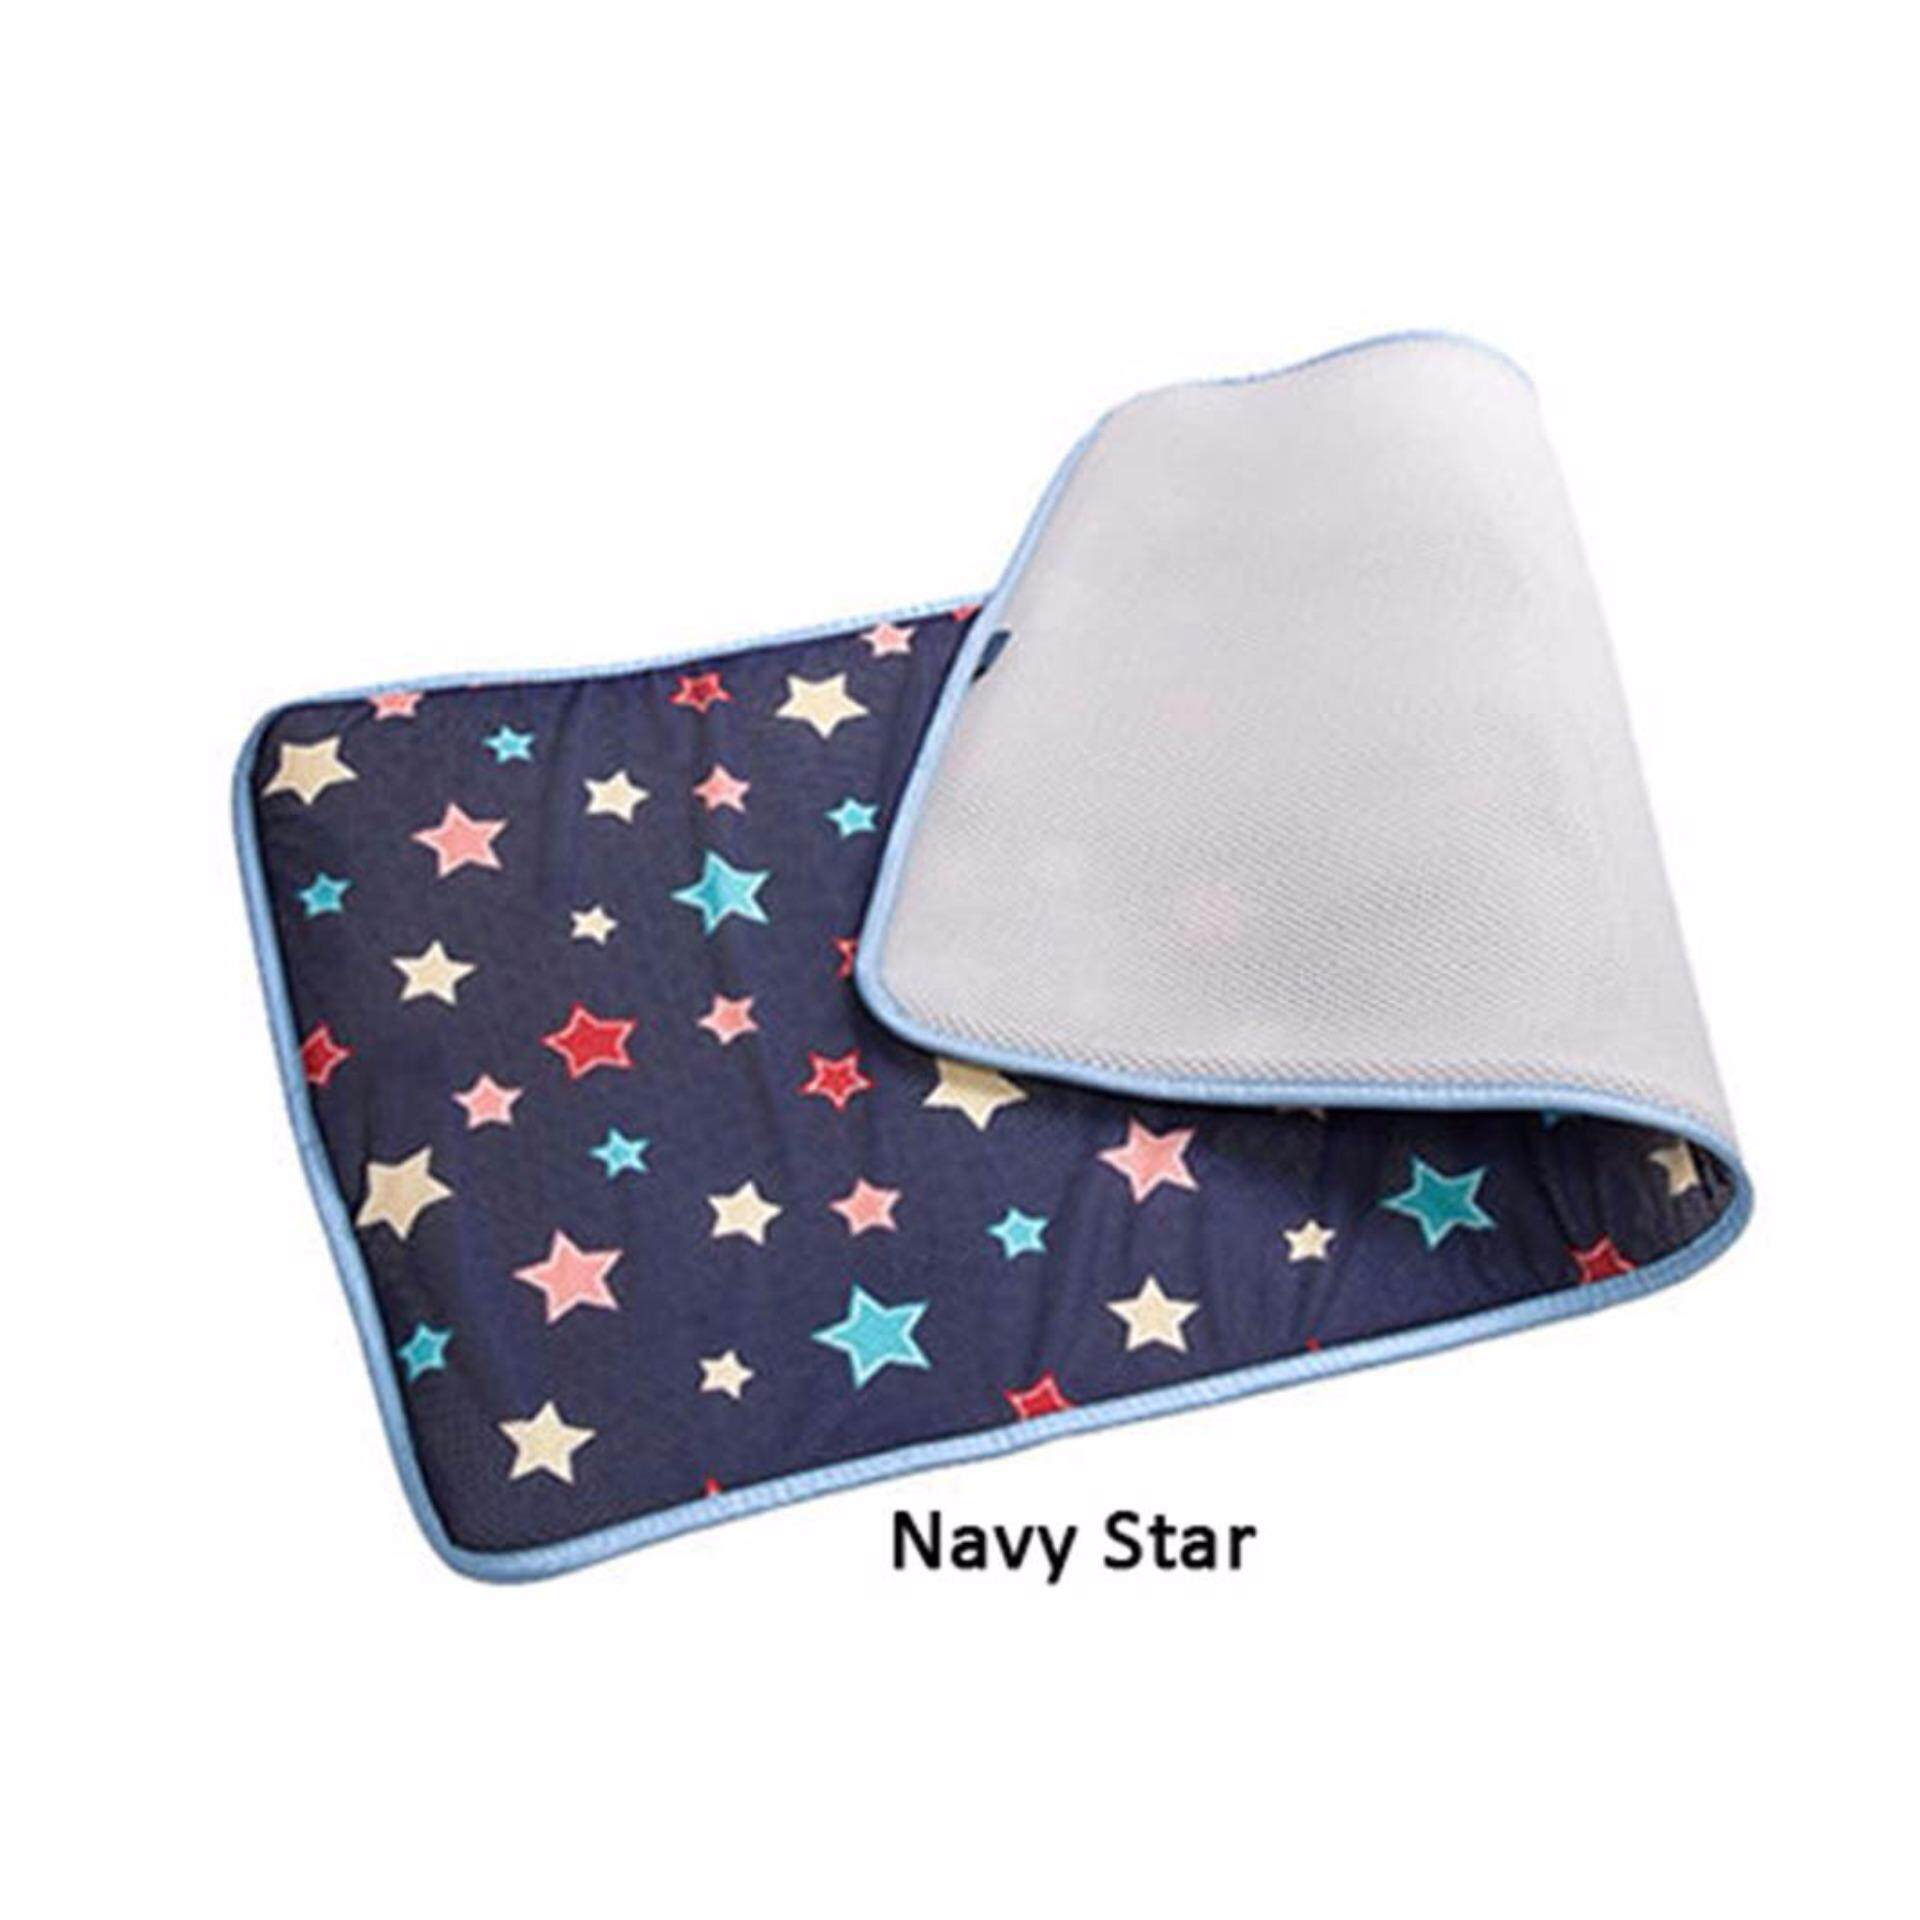 GIO KIDS MAT Single Side Navy Star M Size with Carrier Bag